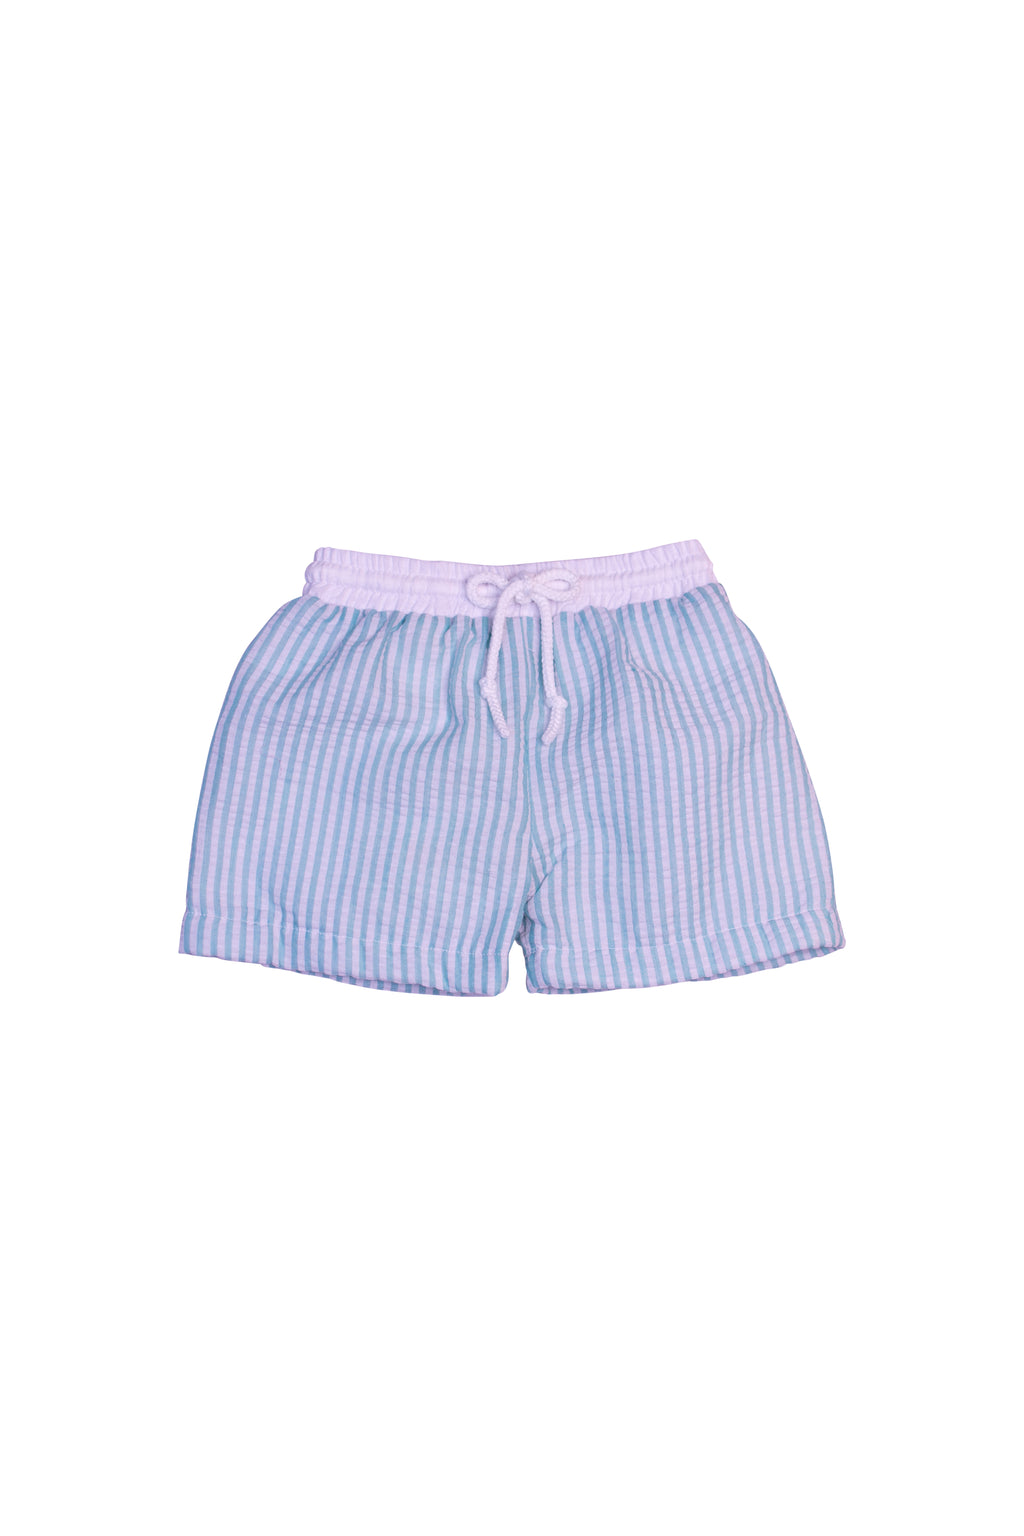 Boys Mint/White Seersucker Swim Shorts